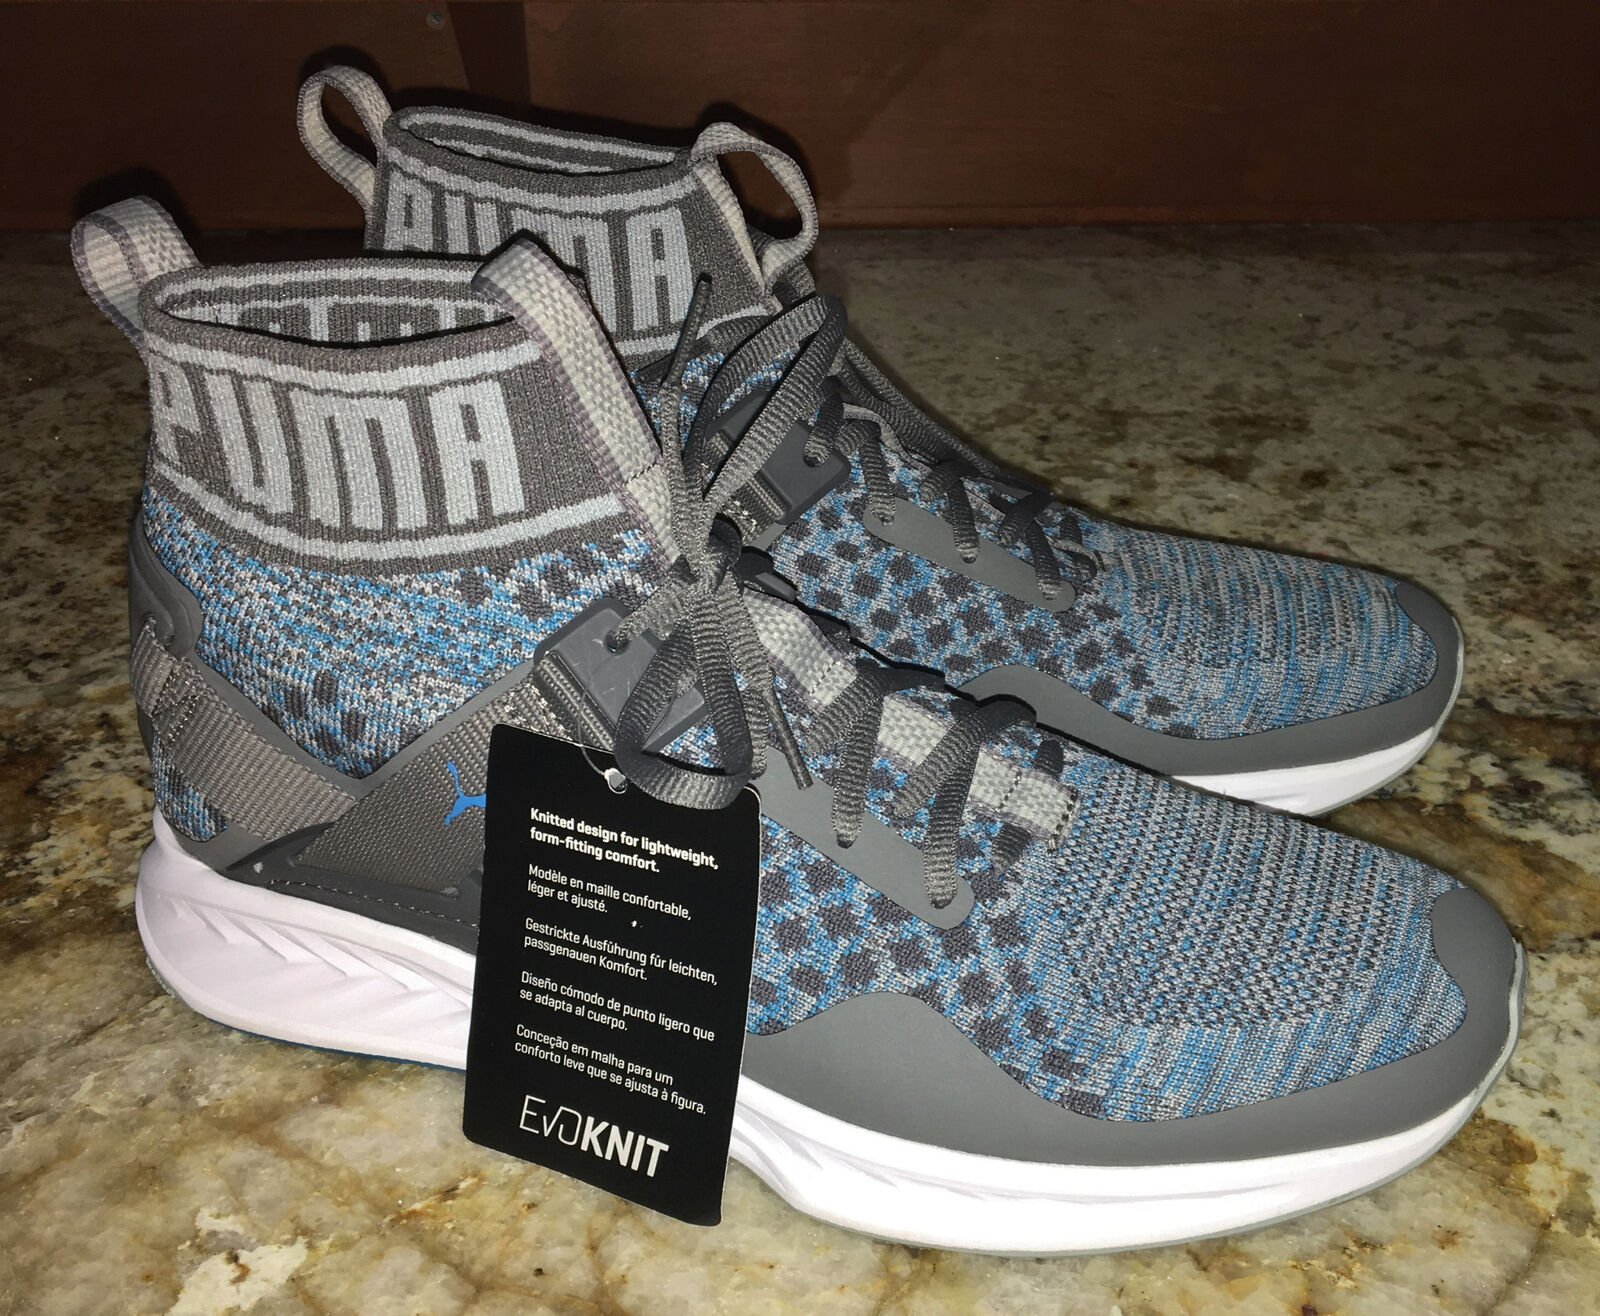 PUMA Ignite evoKnit Lt Dk Grey bluee Training shoes Sneakers Mens Sz 9.5 10